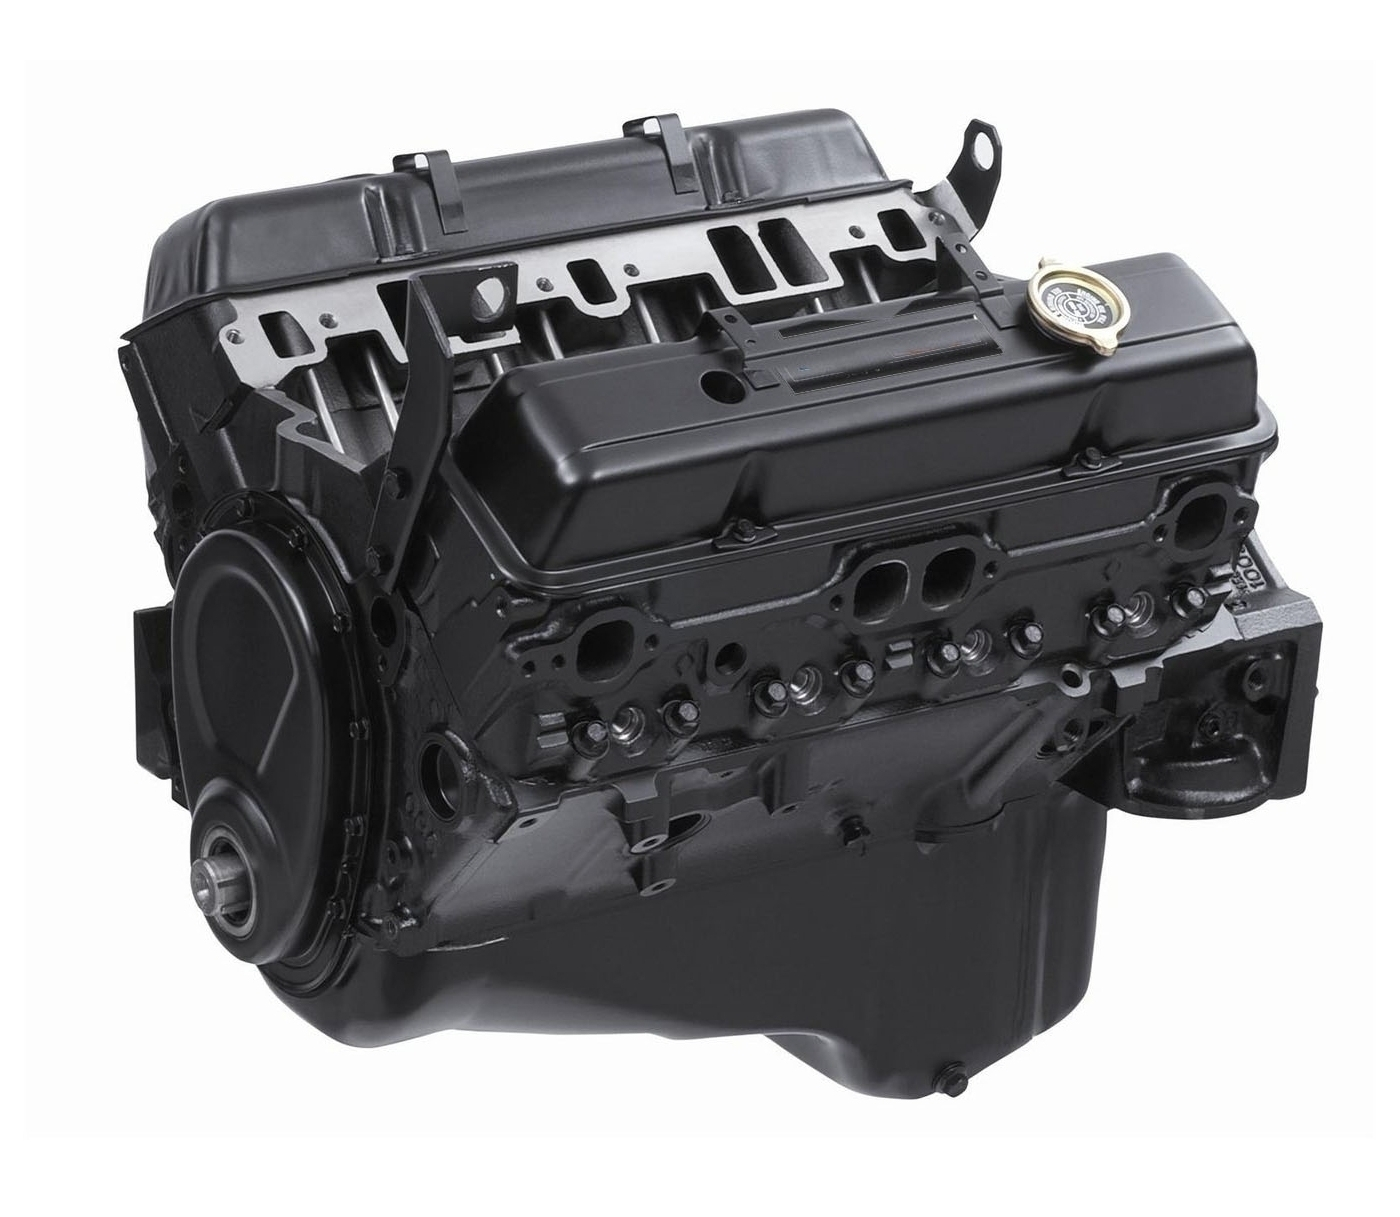 5.7L Reman Long Block Engine For Chevrolet C1500